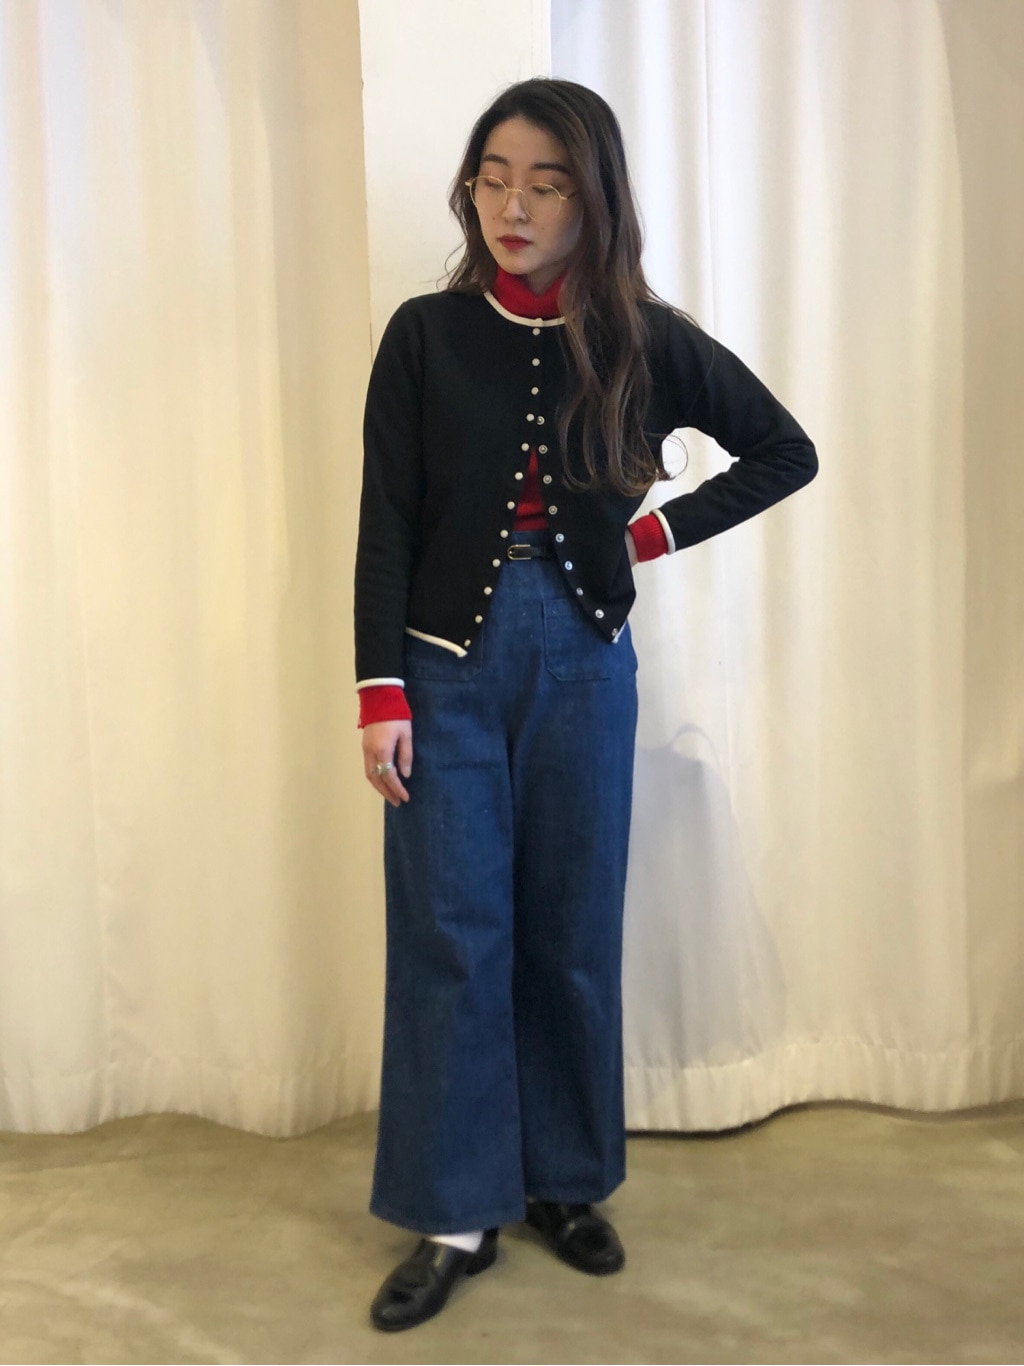 Dot and Stripes CHILD WOMAN ラフォーレ原宿 身長:153cm 2020.12.29